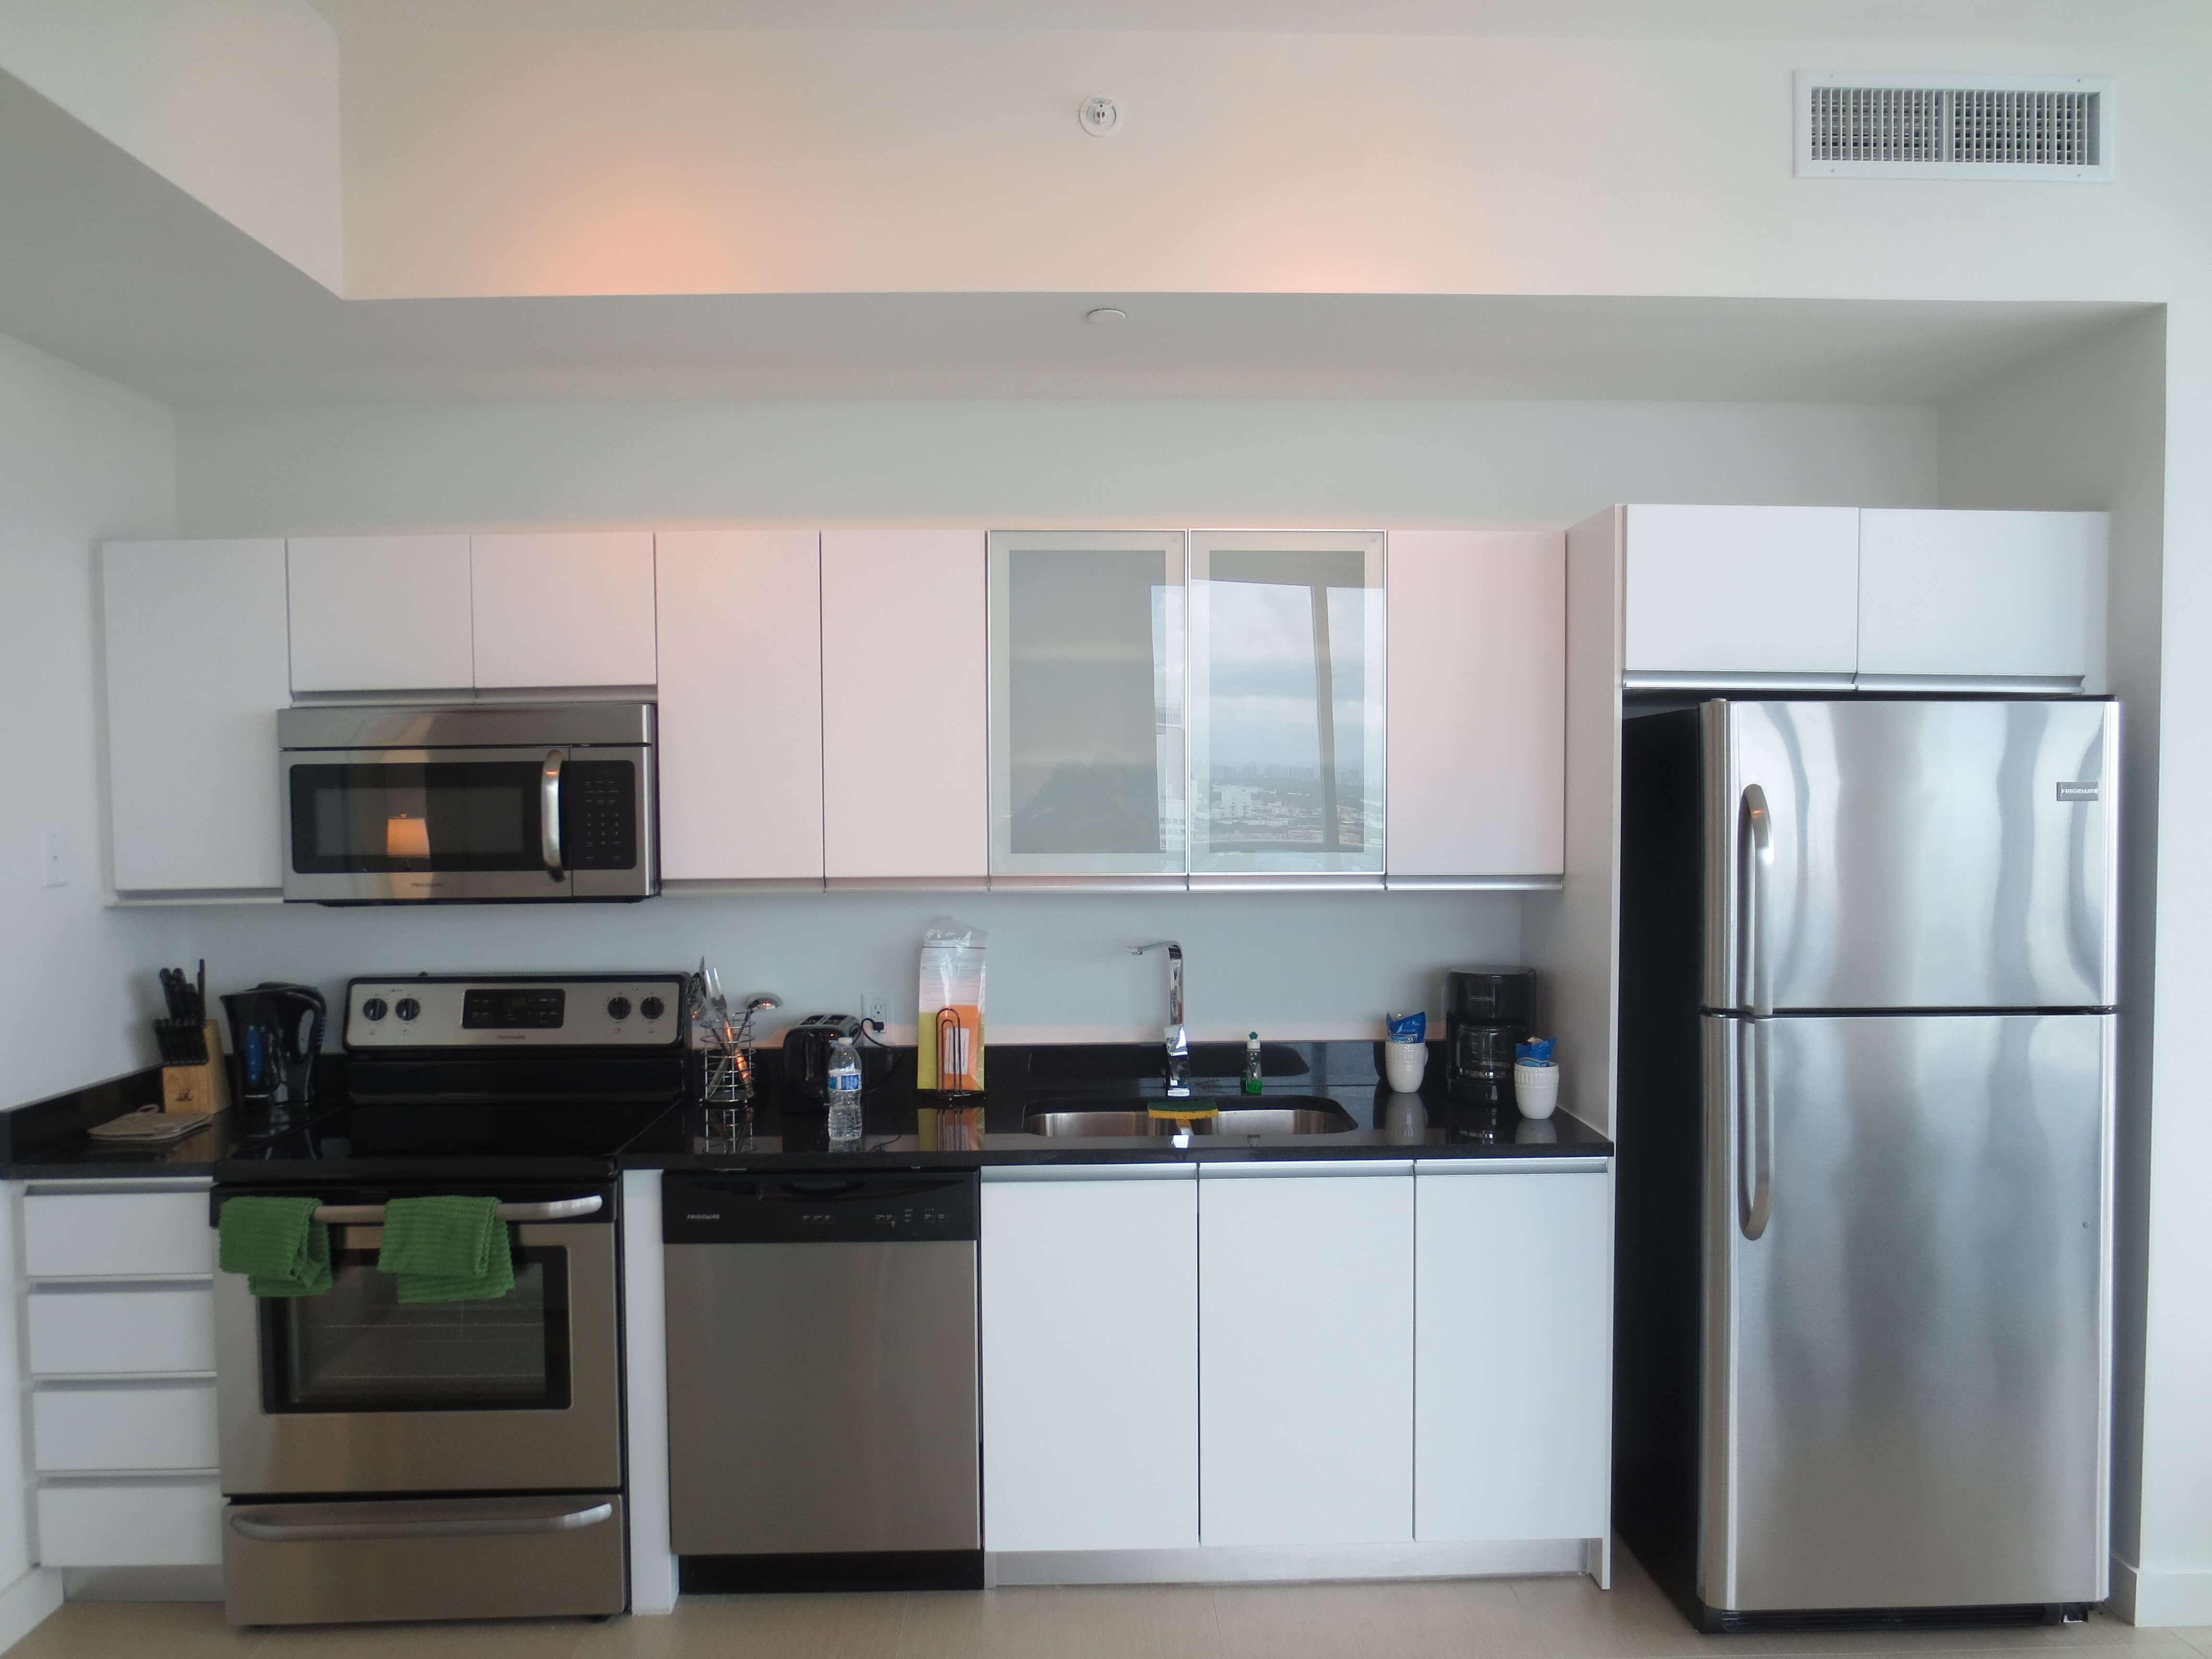 1 Bedroom Apartment For Rent In Miami 28 Images Cheap 2 Bedroom Apartments For Rent In Miami